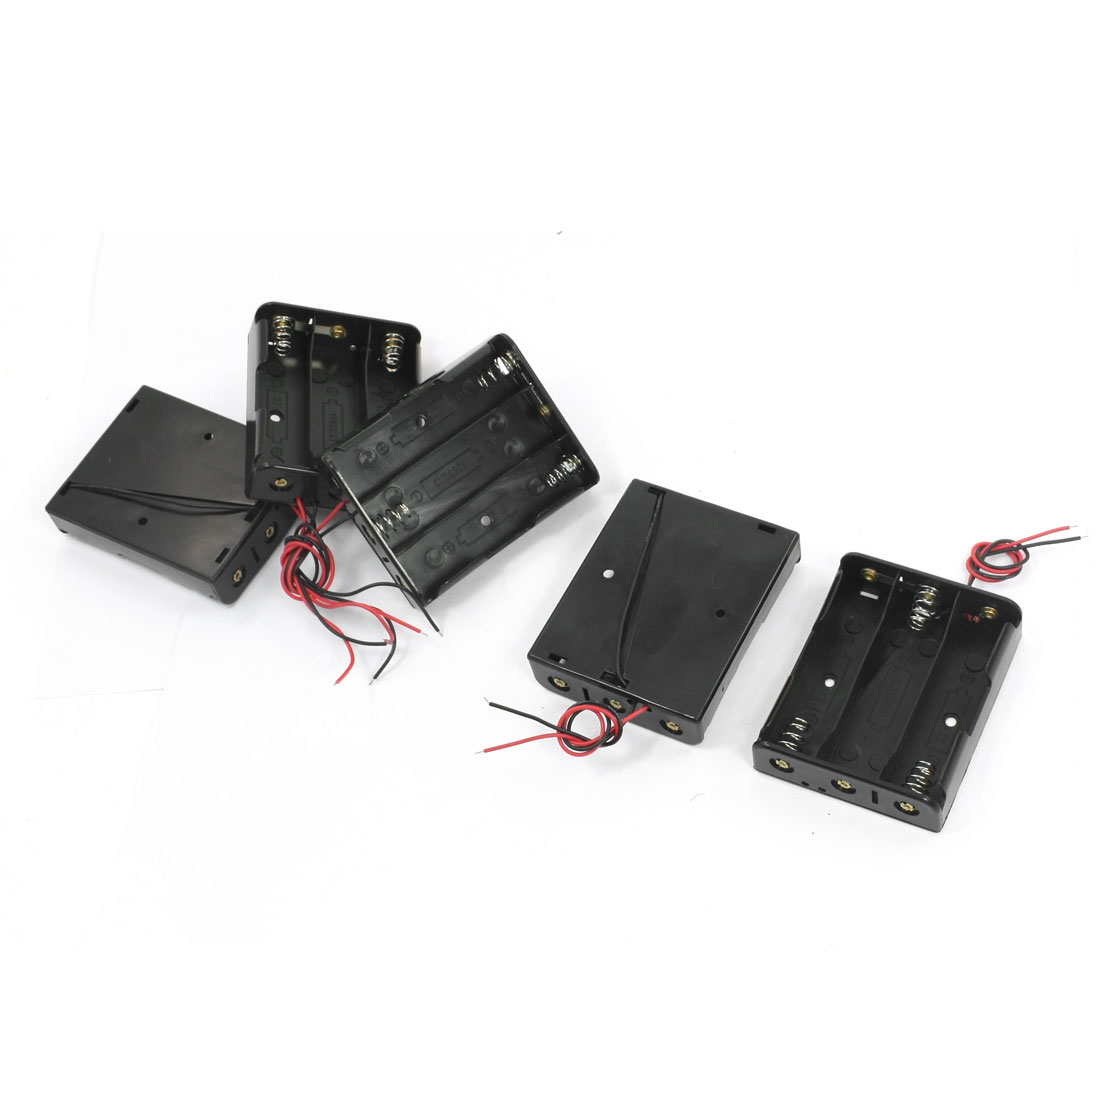 5 Pcs Double Wire Open Frame Rectangular Plastic Shell 3 x 1.5V AA Battery Holder Case Storage Box Container